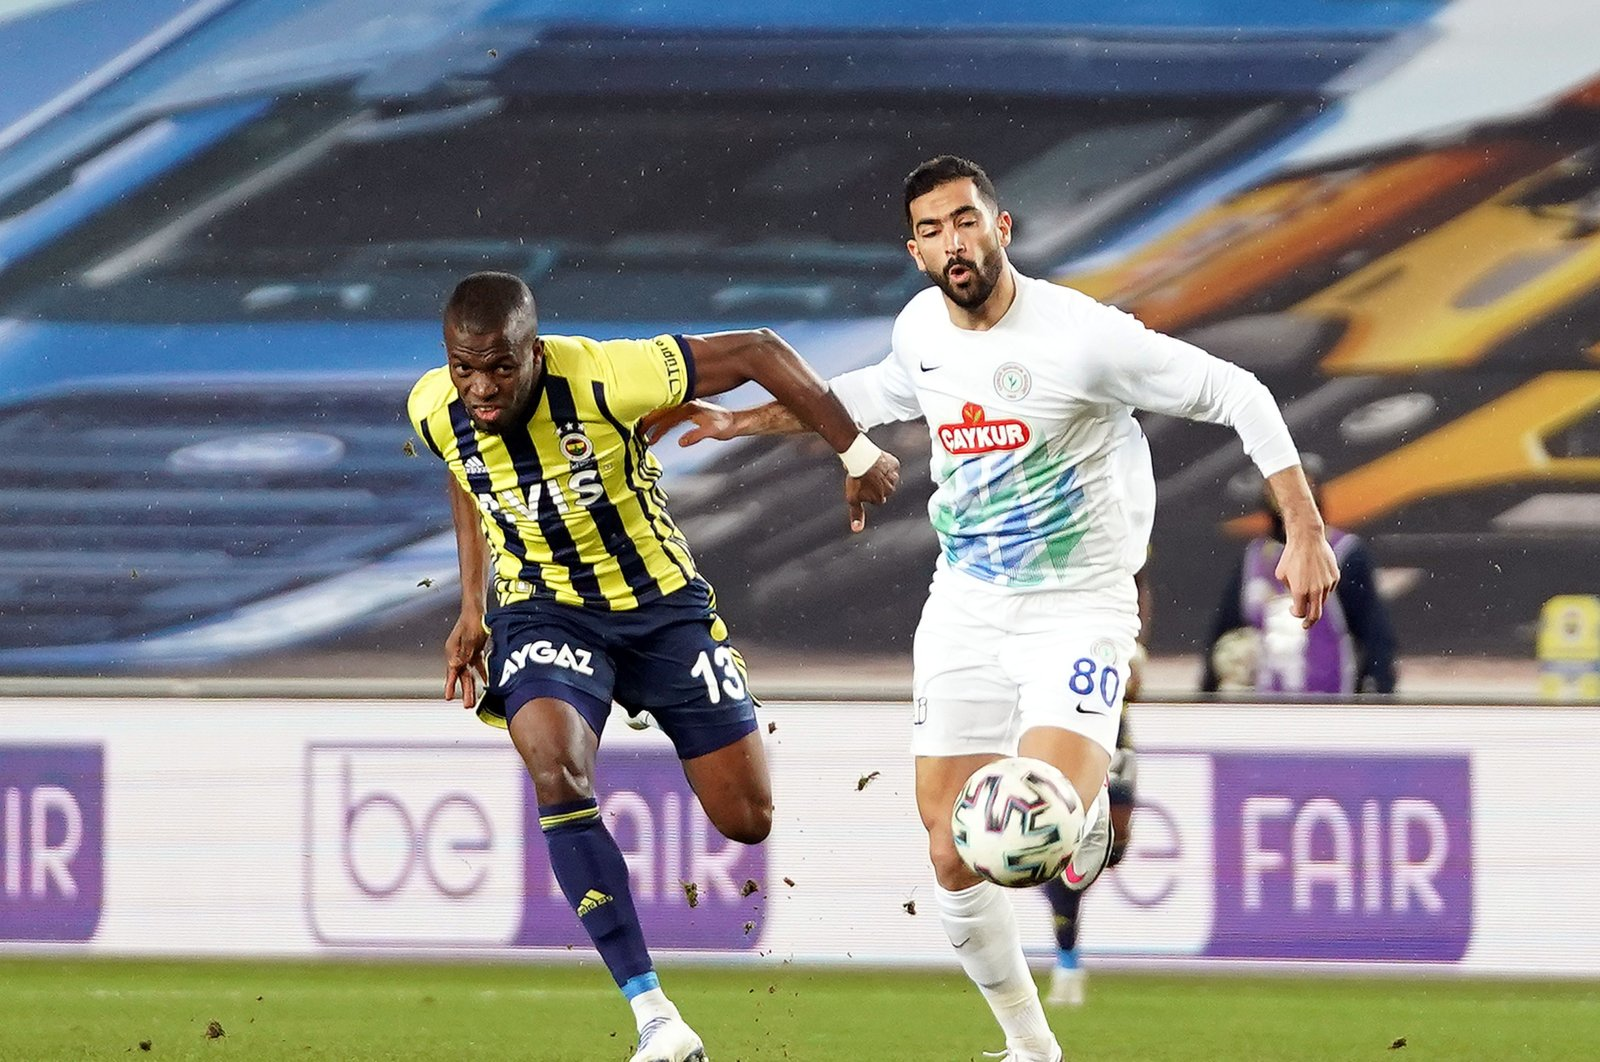 "Fenerbahçe's Enner Valencia in action against Rizespor's Yassine Meriah, against the backdrop of a sign reading ""Be Fair"" in protest of broadcaster bein Sports, in Istanbul, Turkey, Jan. 30, 2021. (İHA Photo)"